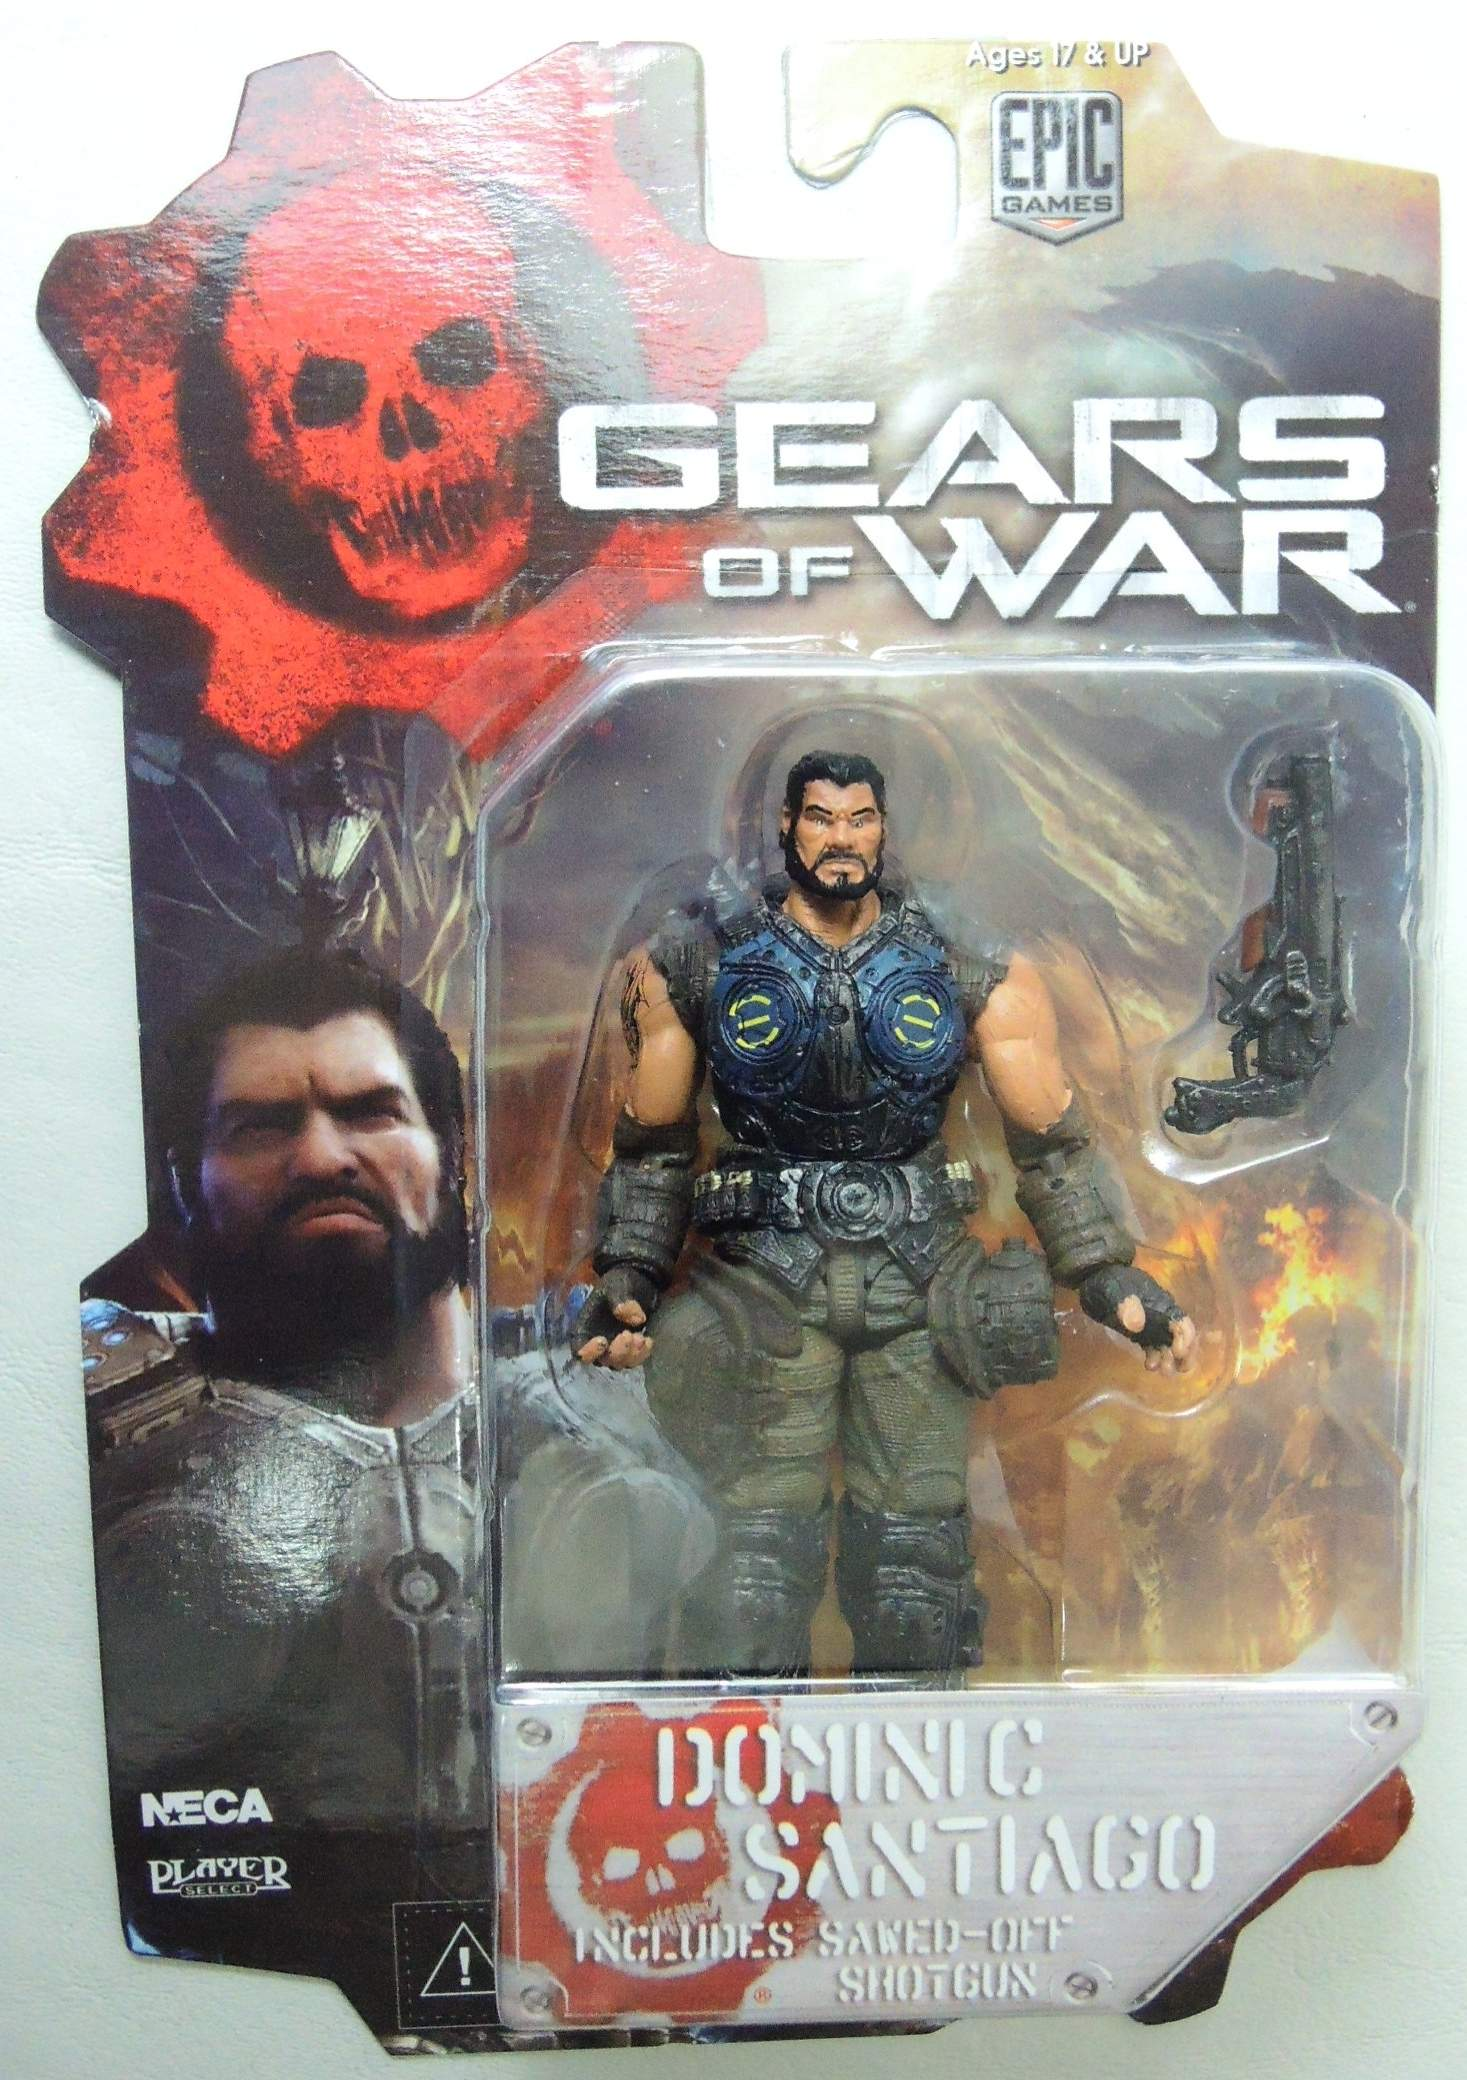 NECA Gears of War 3.75 inch Series 2 Figure - Dominic Santiago NECA, Gears of War, Action Figures, 2013, scifi, video game